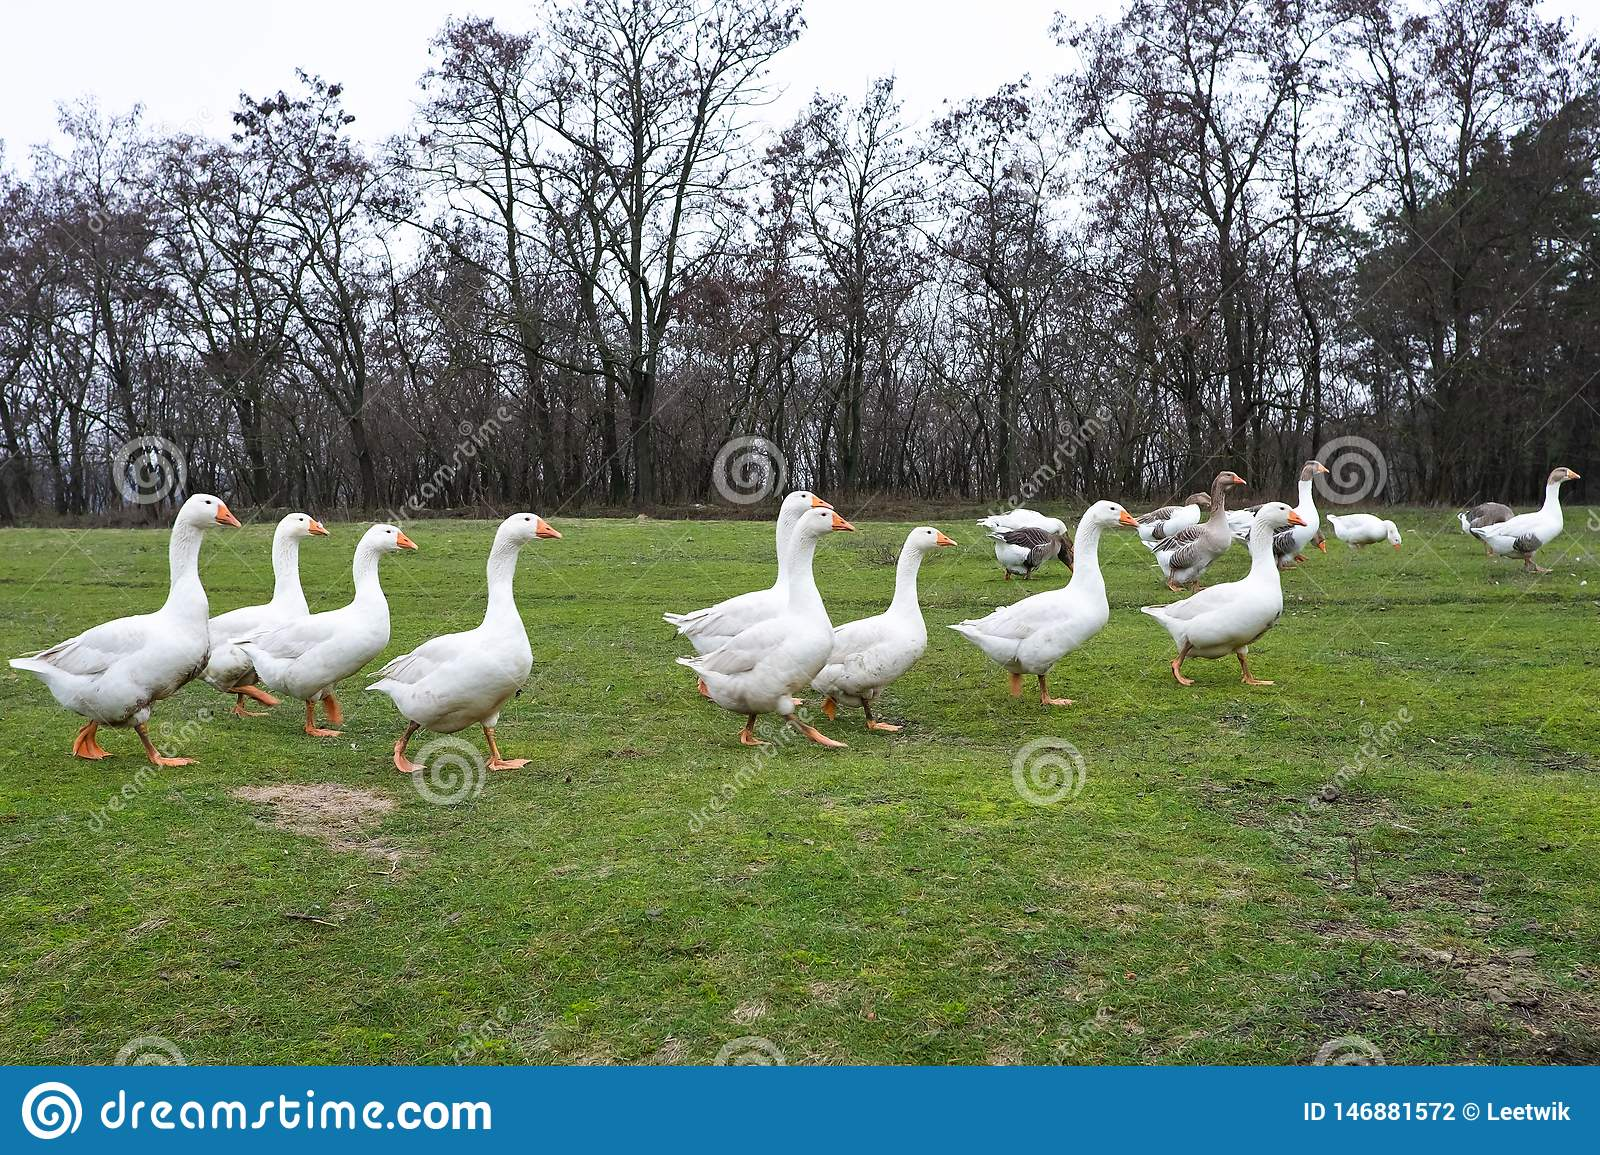 Domestic geese graze in the meadow. Poultry walk on the grass. Domestic geese are walking on the grass. Rural bird grazes in the